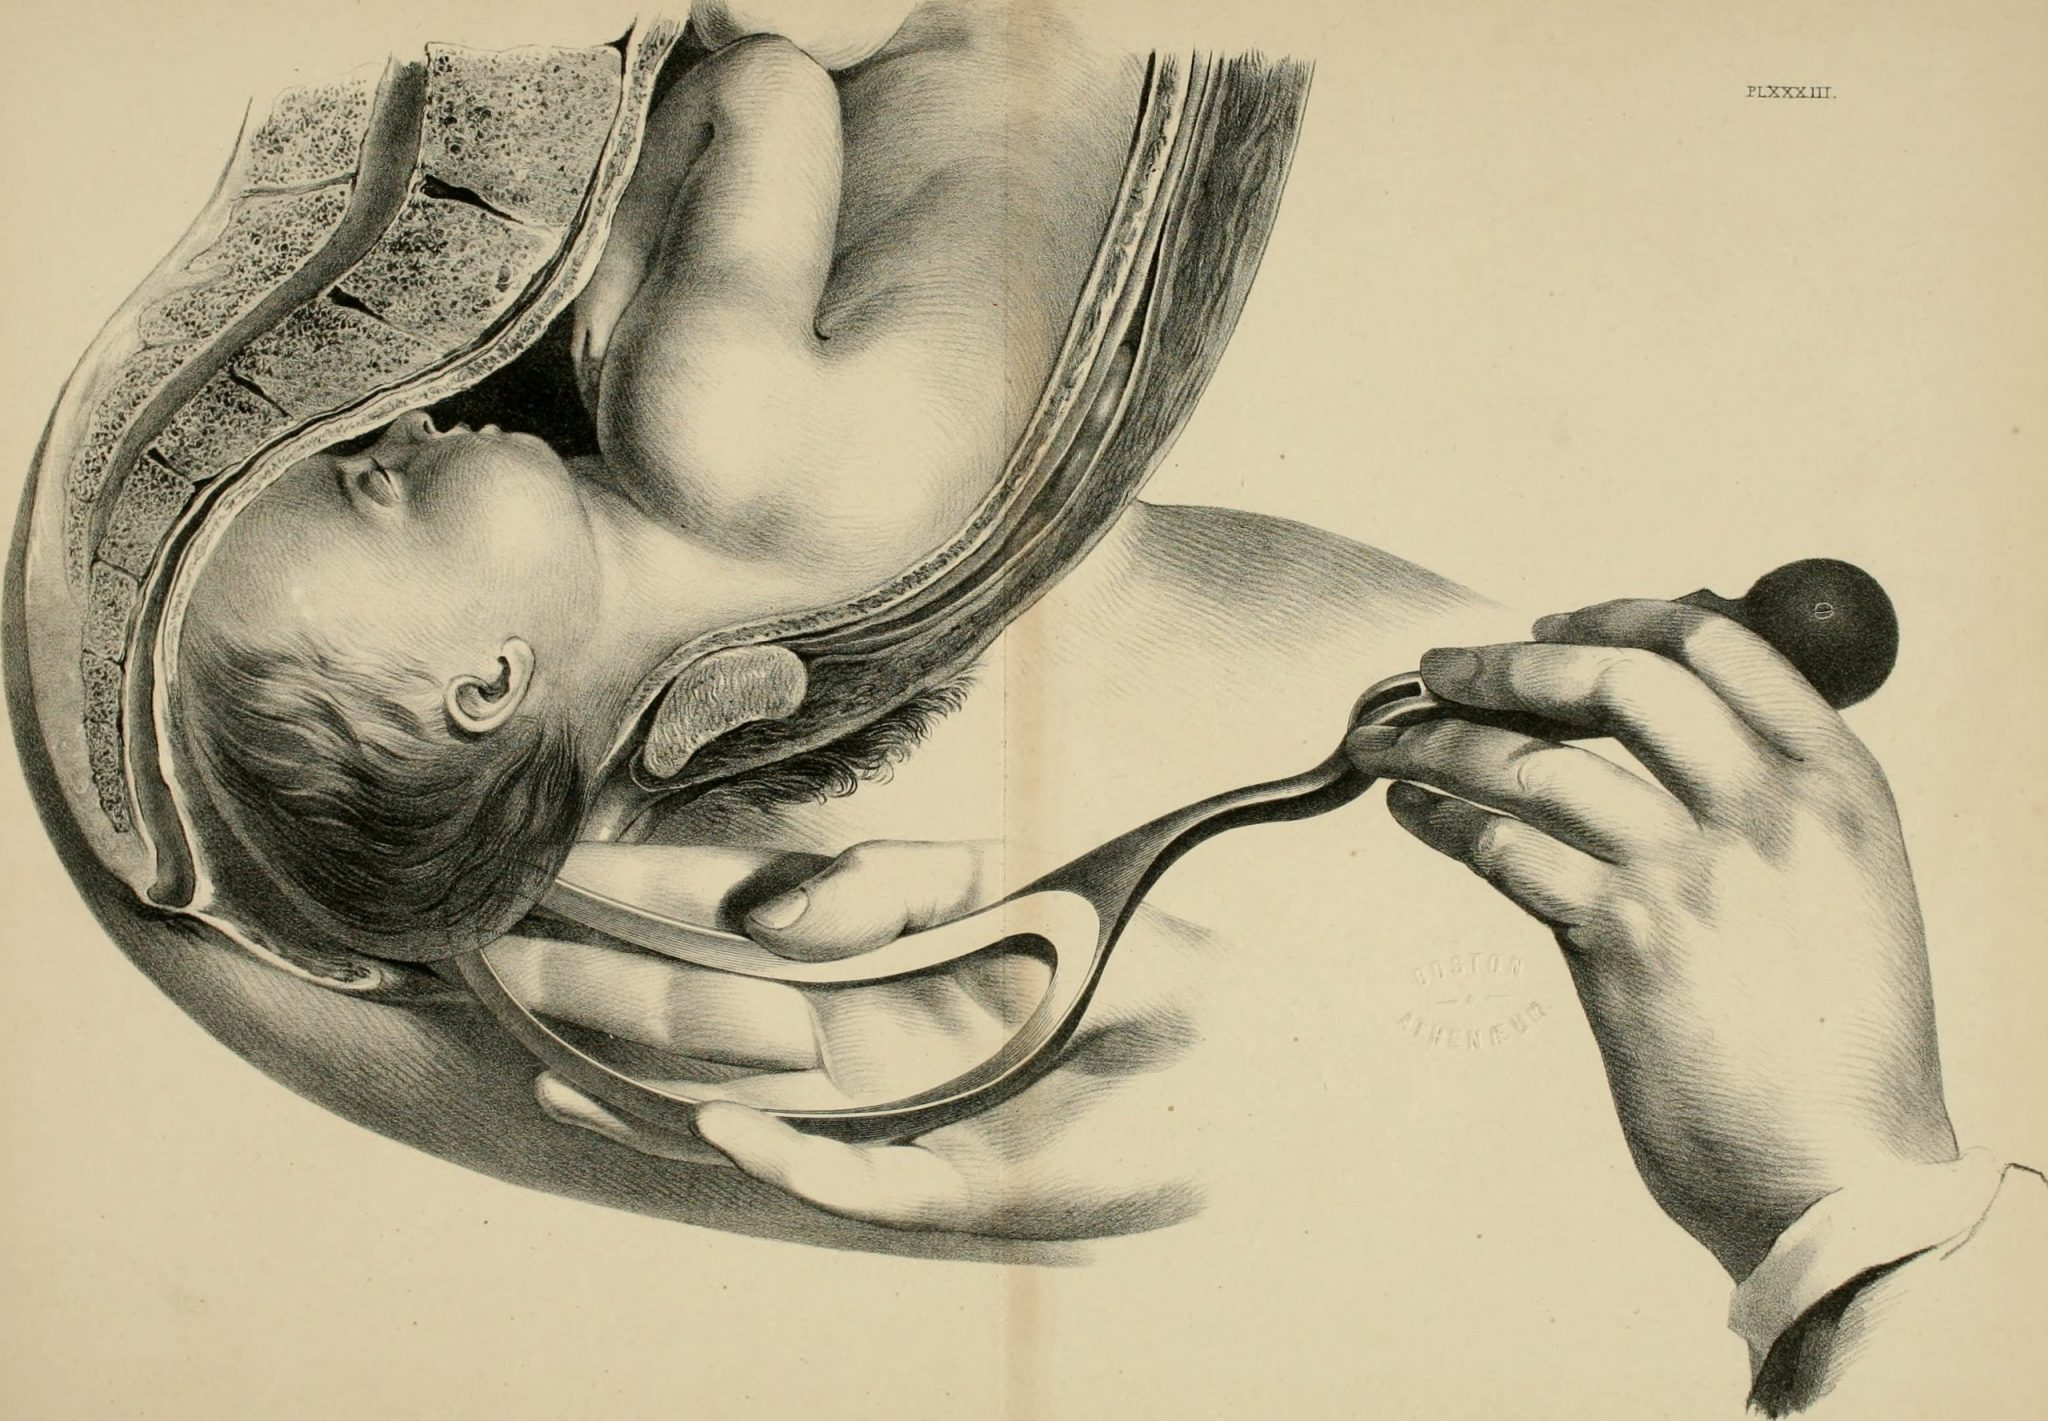 OBSTETRICS ILLUSTRATED